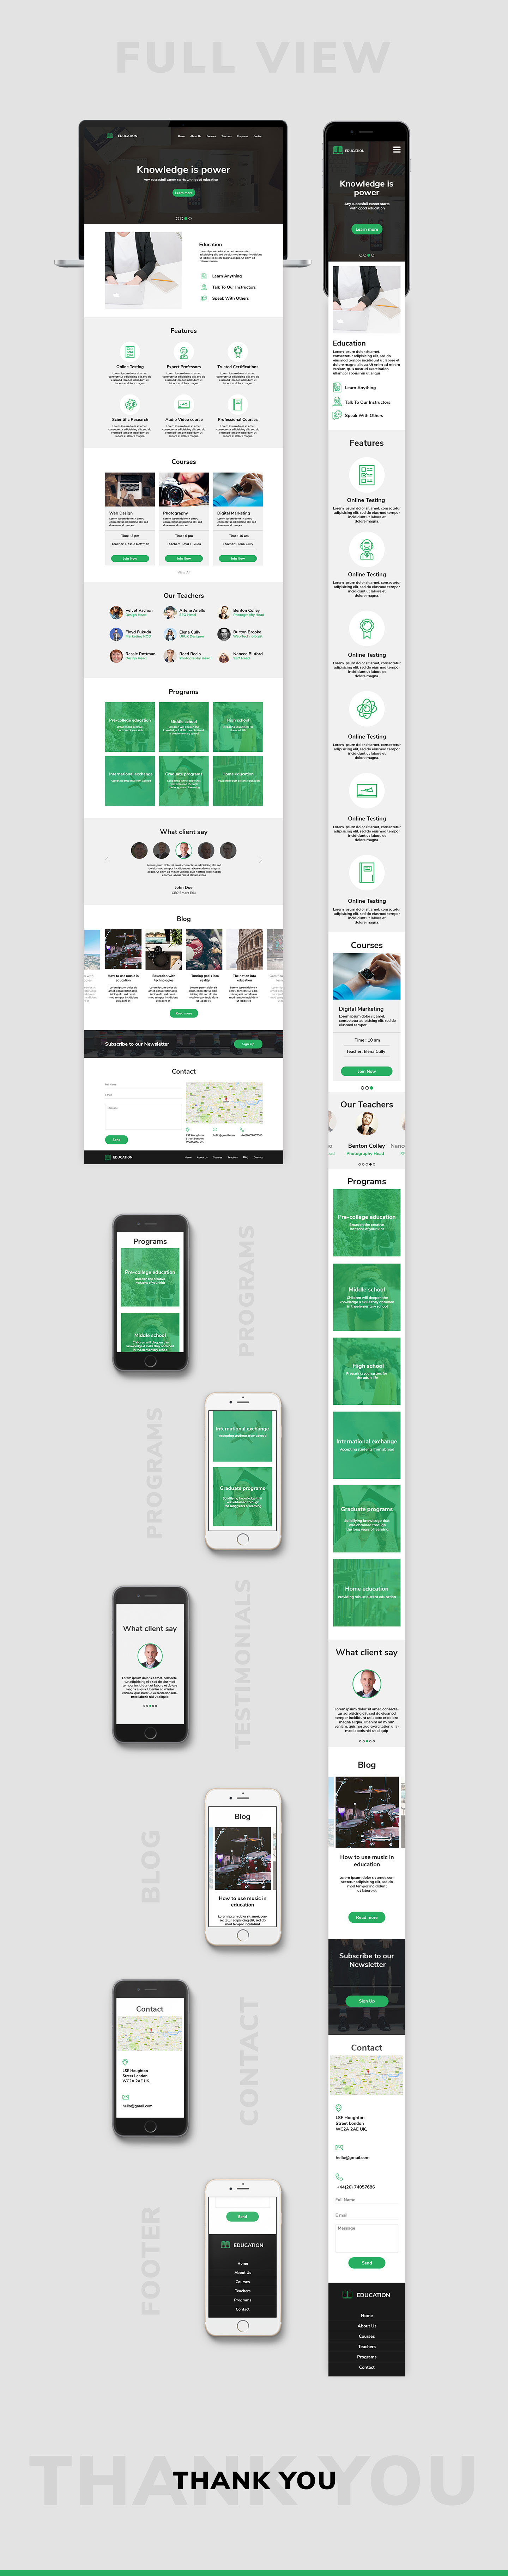 Education Web Template for Adobe Xd and Photoshop - Free Download Resource - Green UI Kit